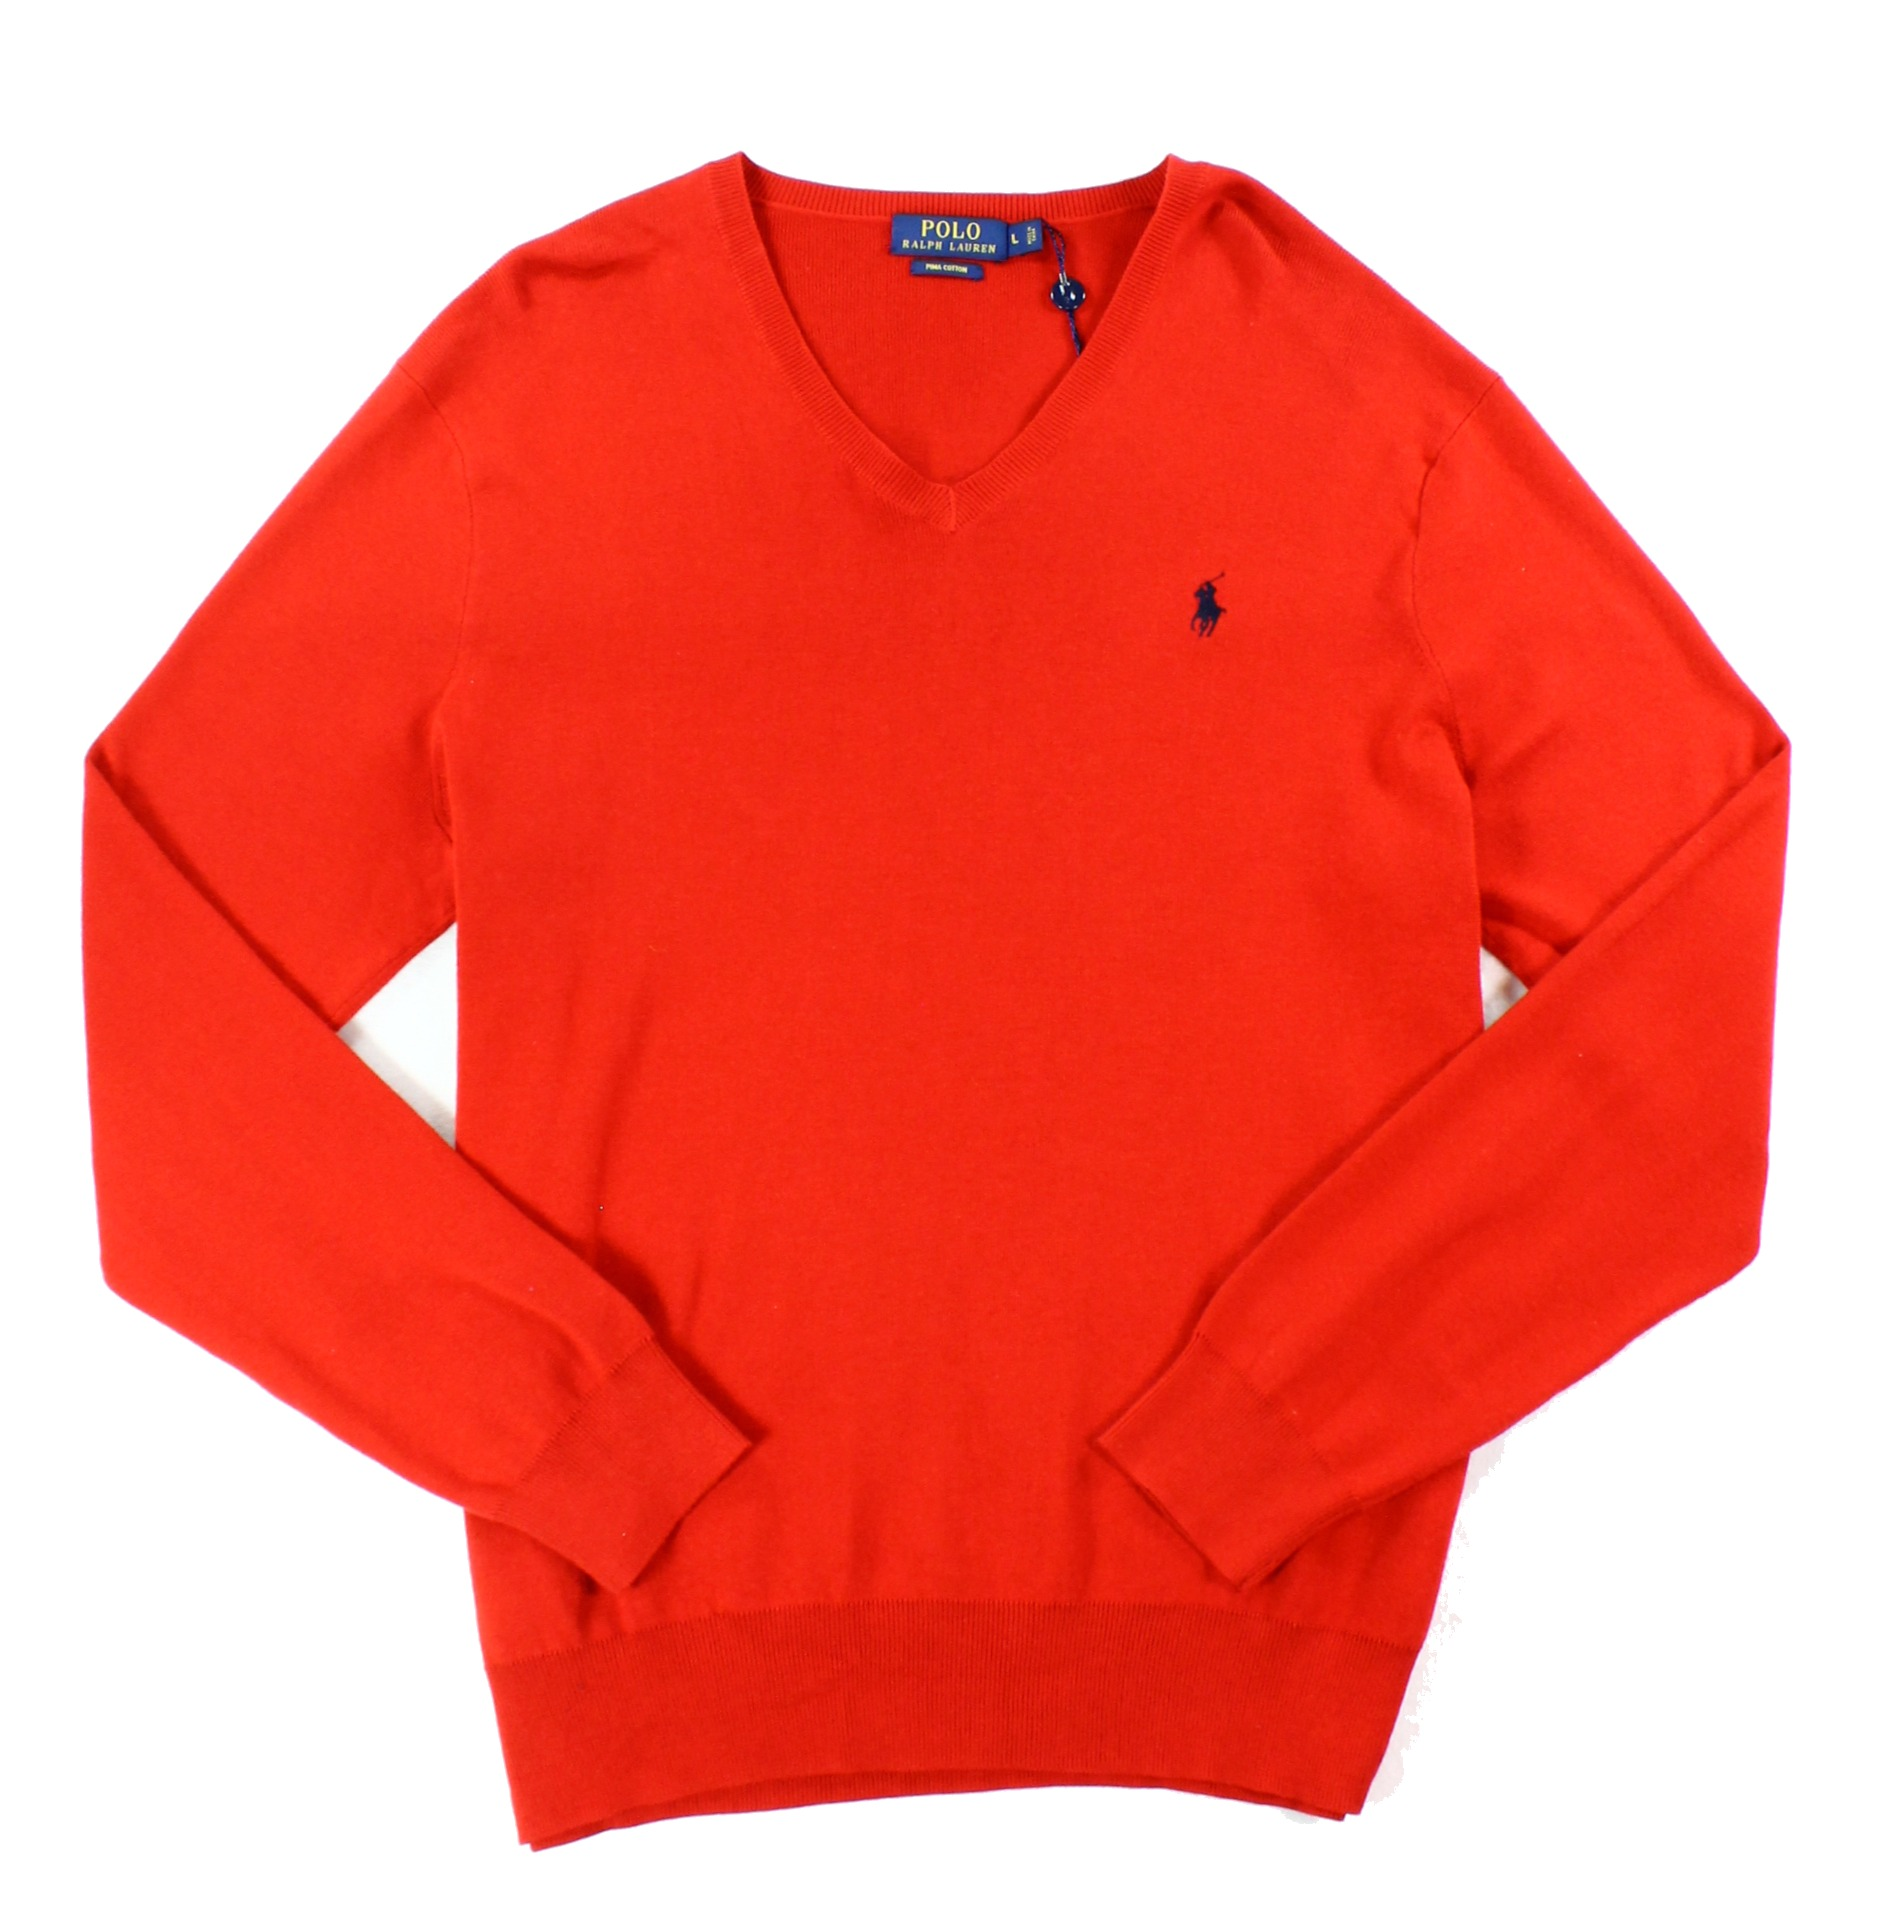 Polo-Ralph-Lauren-NEW-Red-Mens-US-Size-Medium-M-Solid-V-Neck-Sweater-98-163